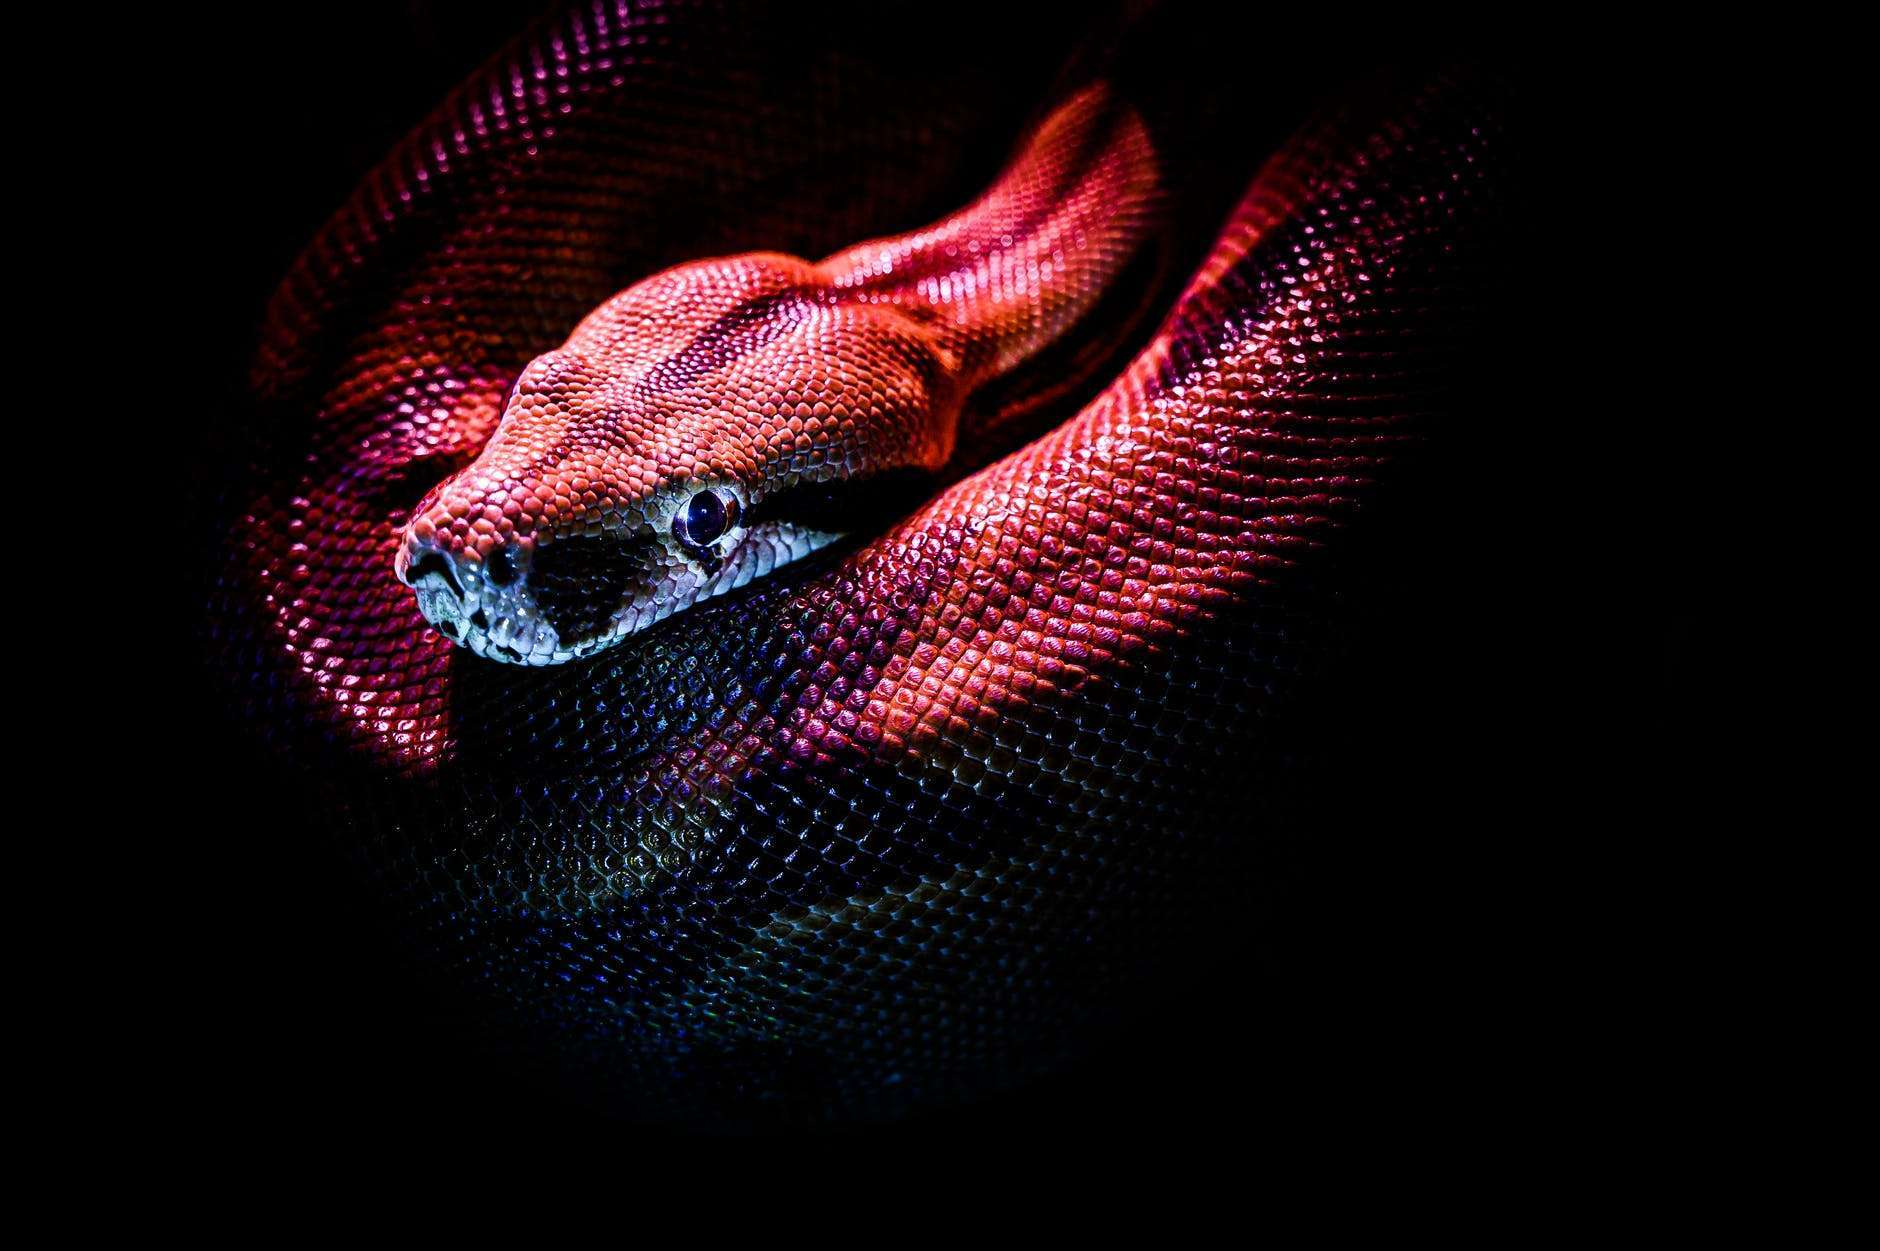 photo of a red snake